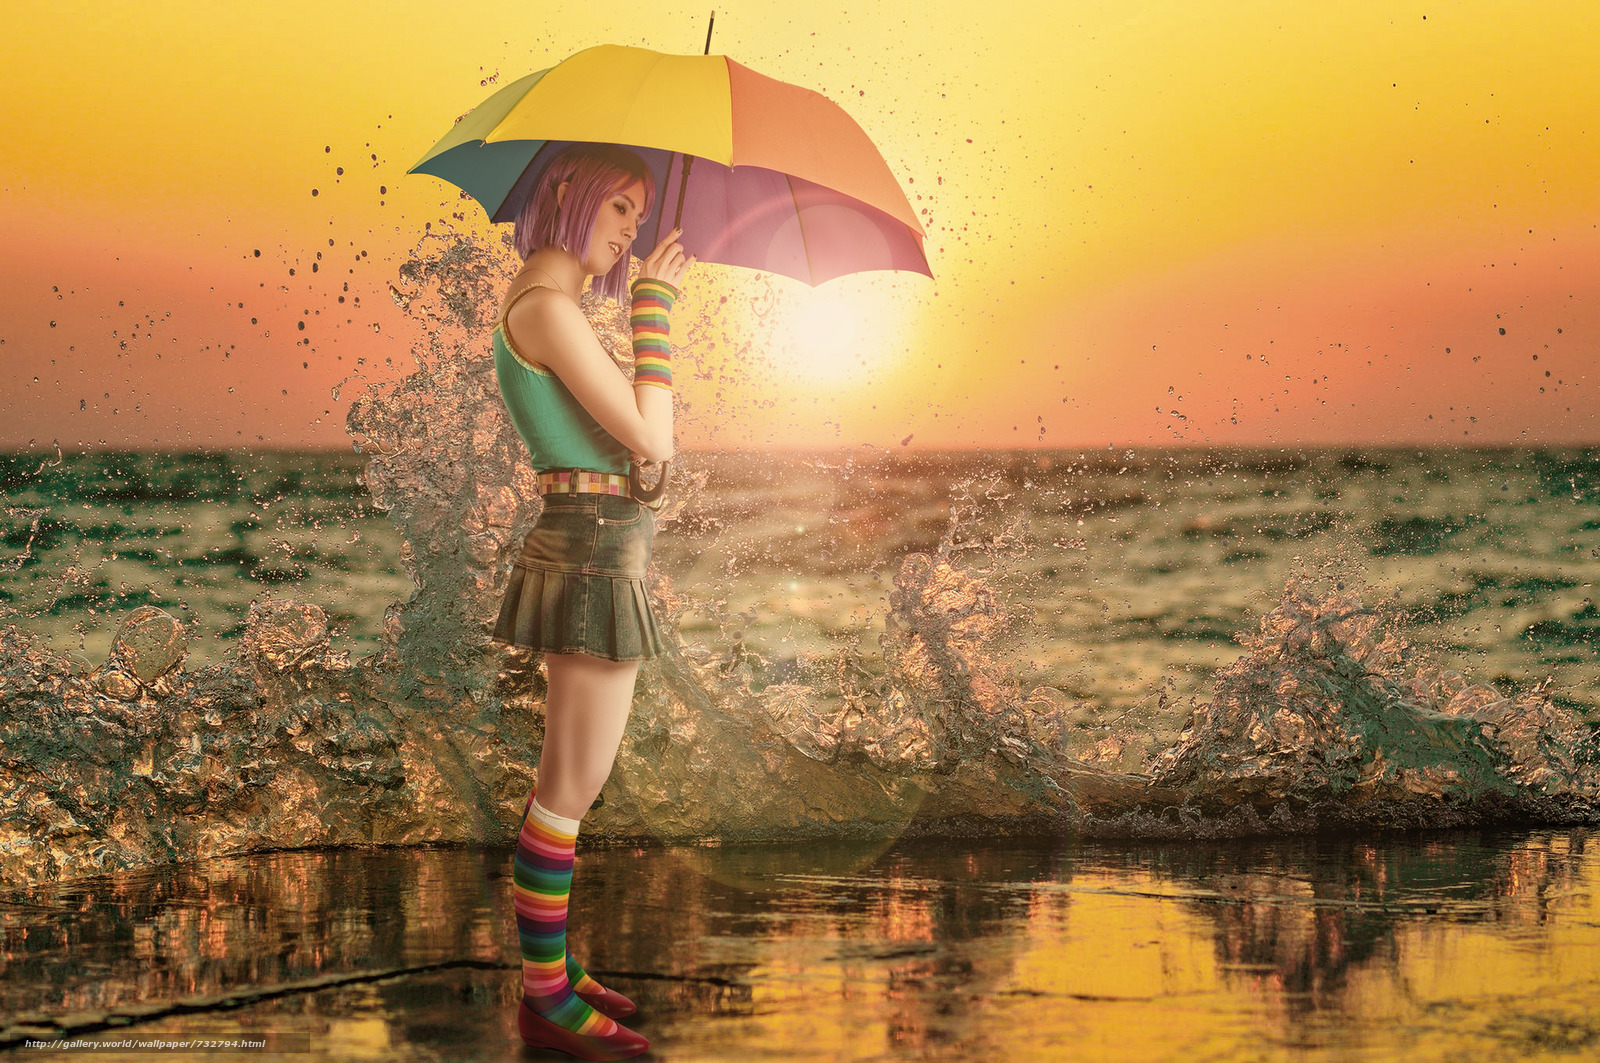 sunset, girl, umbrella, spray, sea, mood